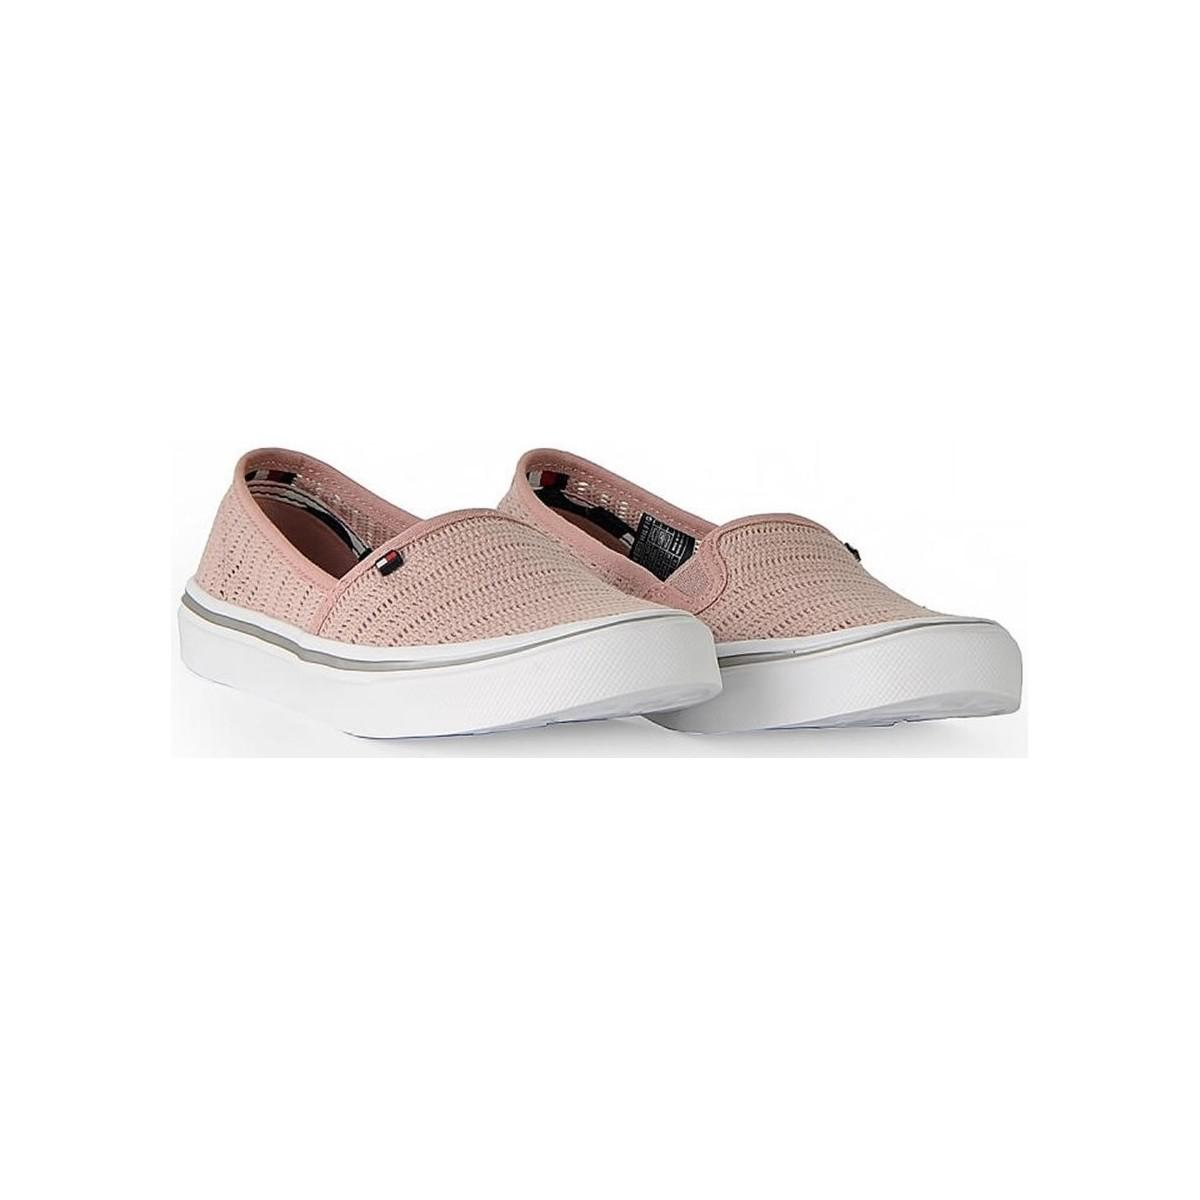 6cad57715 Tommy Hilfiger Mara 4d1 Women s Slip-ons (shoes) In Pink in Pink - Lyst